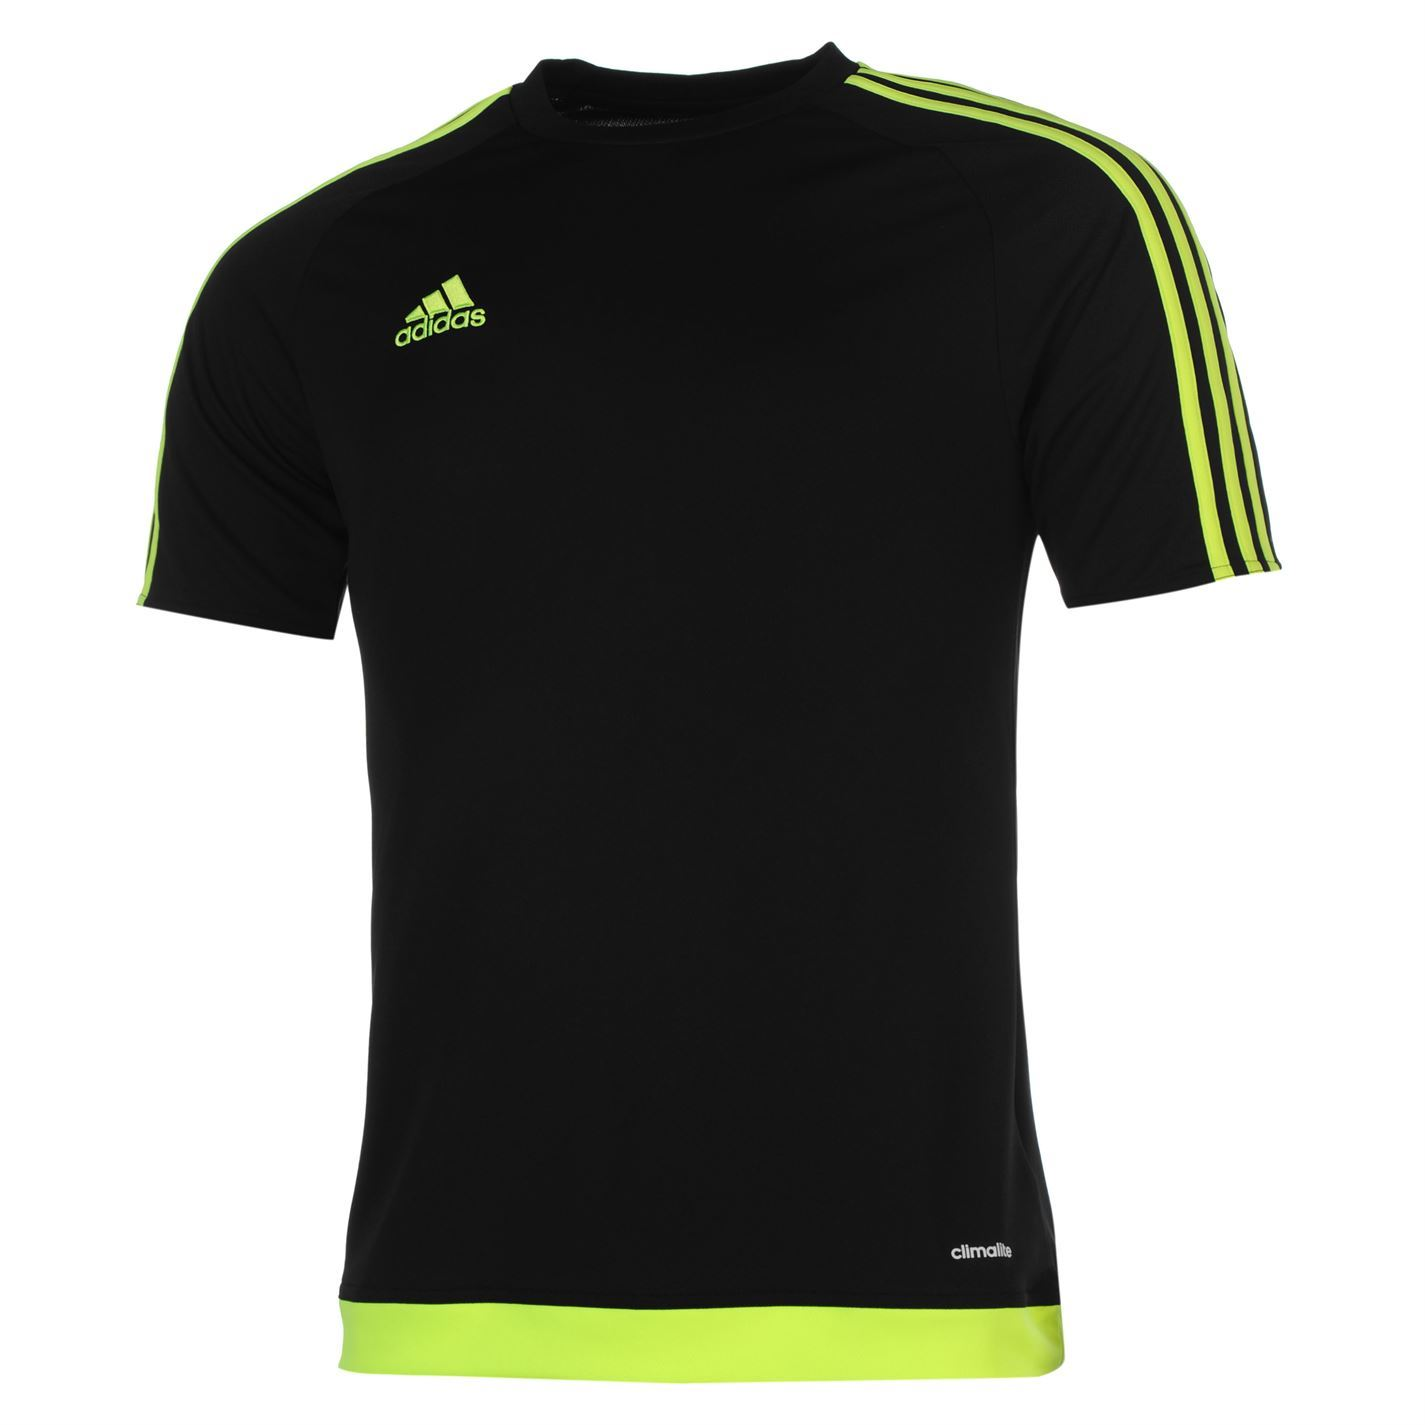 adidas mens 3 stripe estro t shirt short sleeved tee top. Black Bedroom Furniture Sets. Home Design Ideas